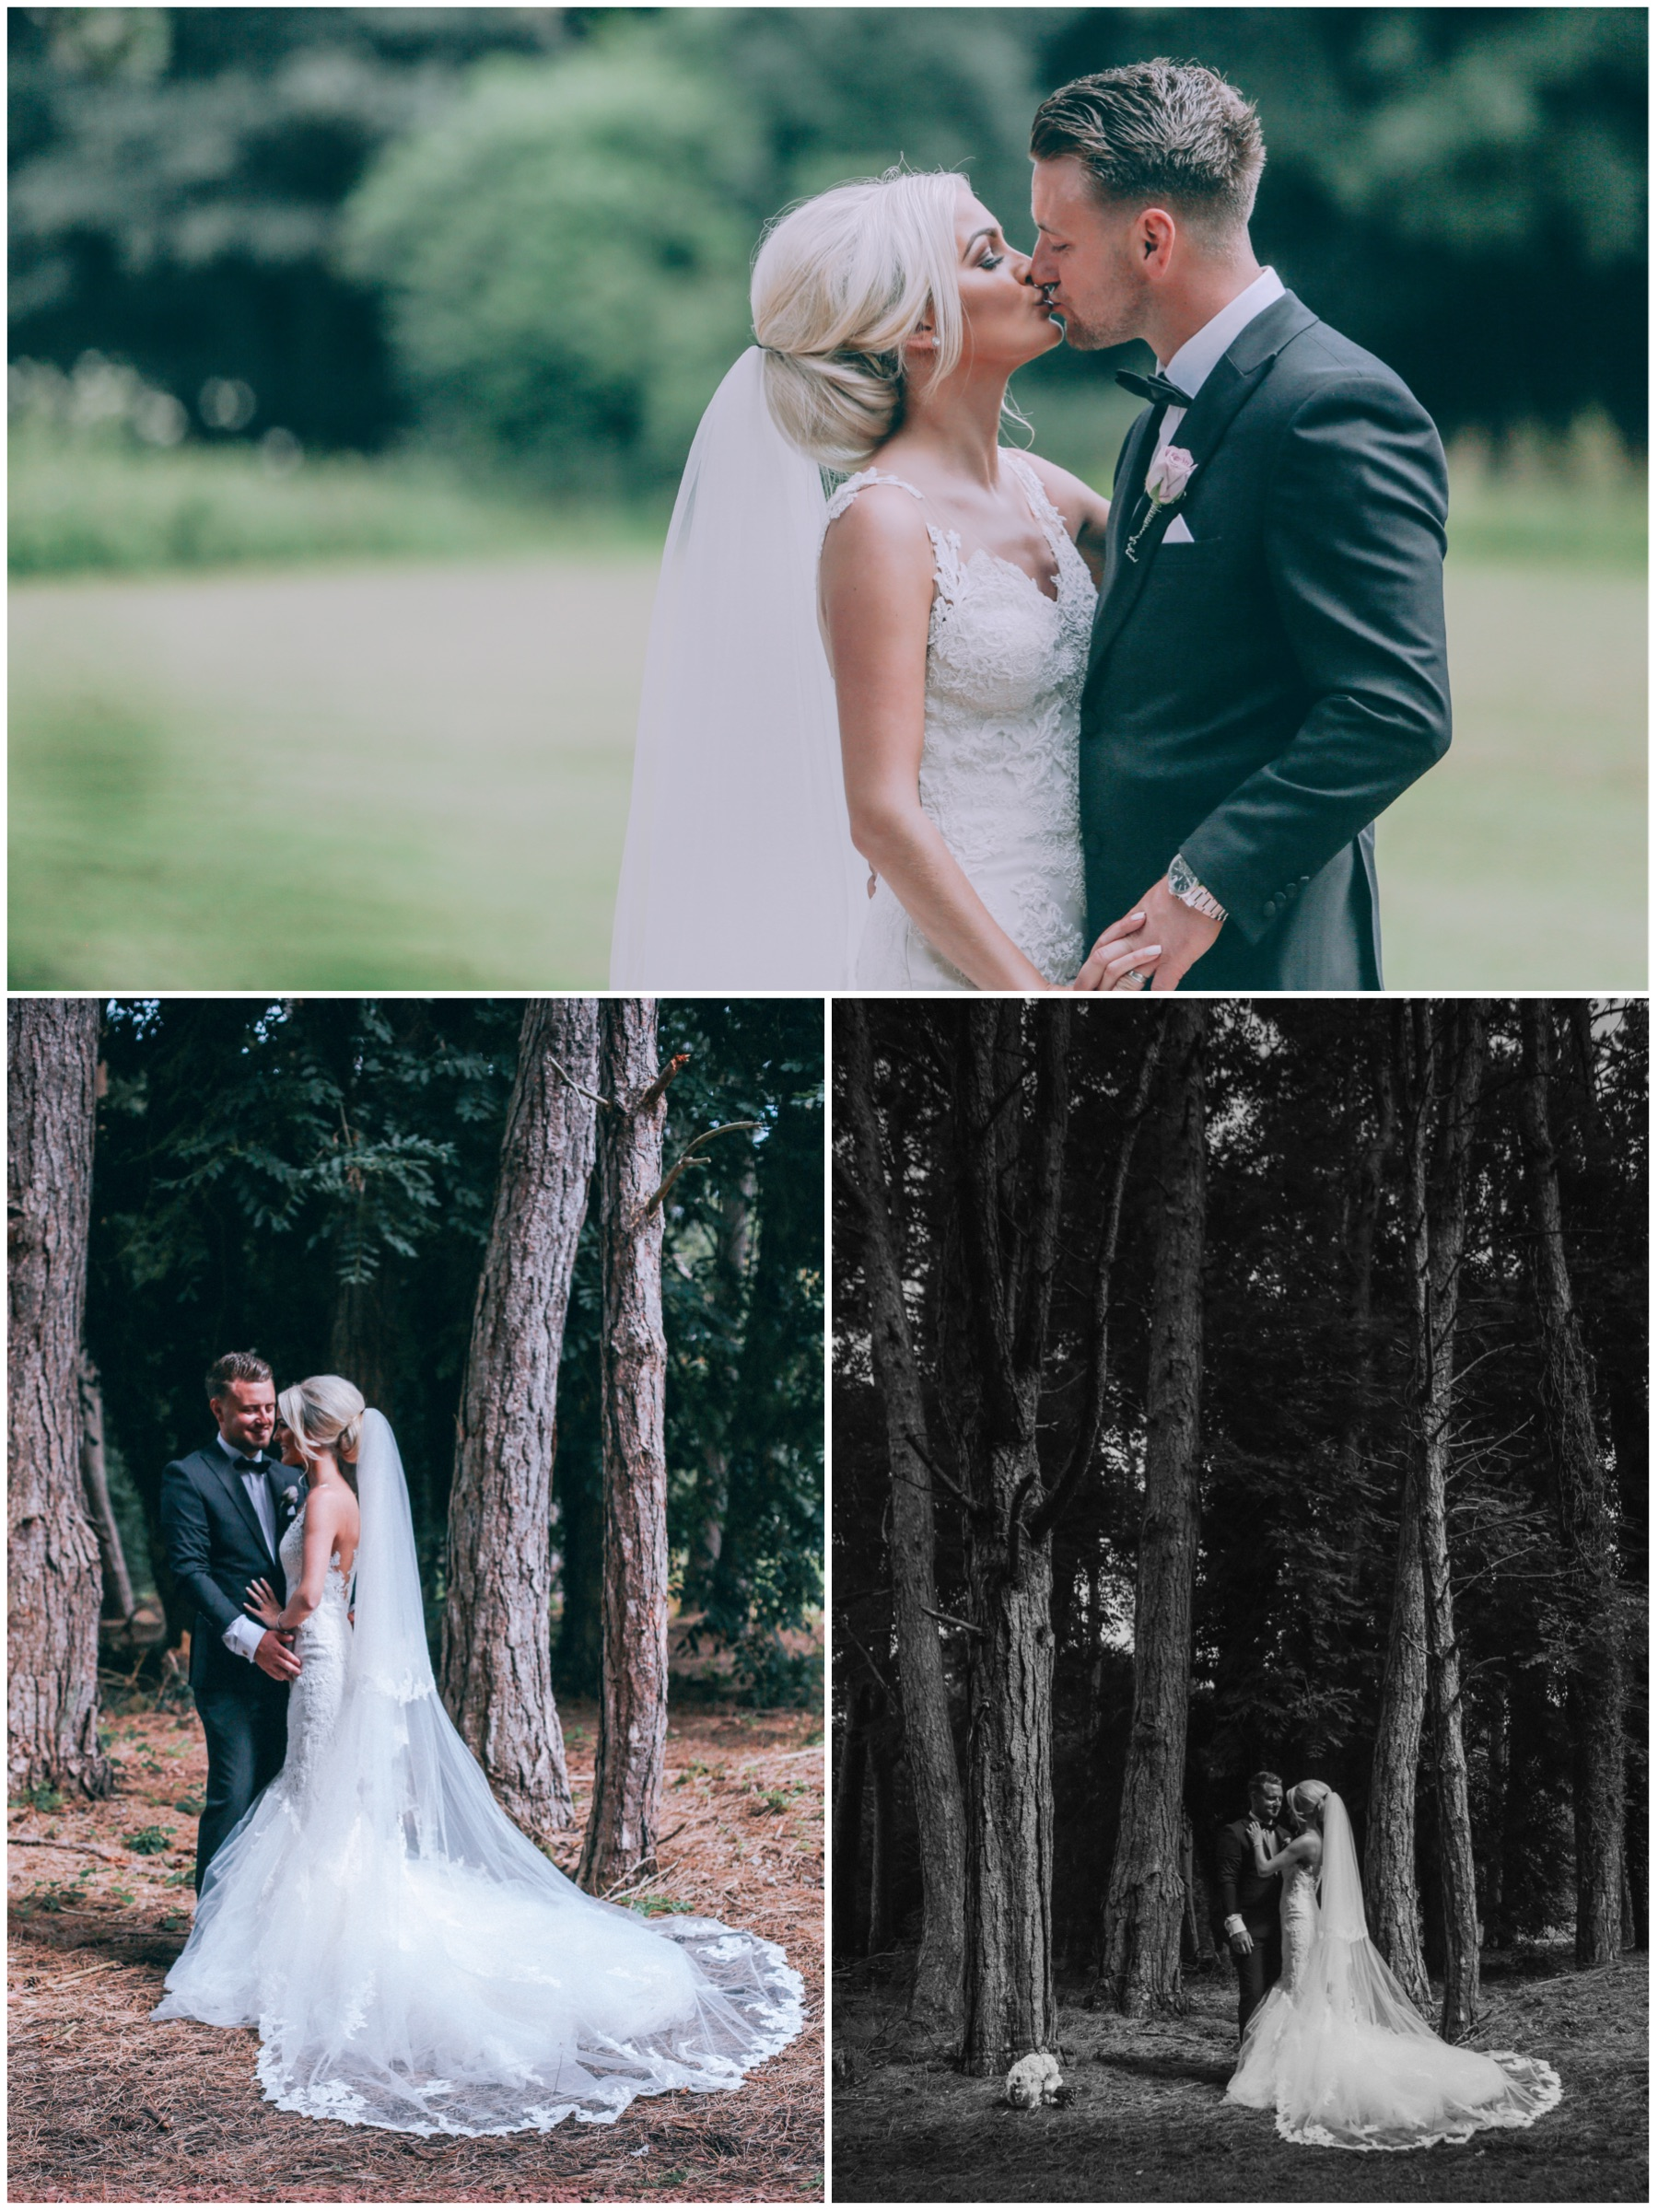 Wedding couple in the woods for photoshoot